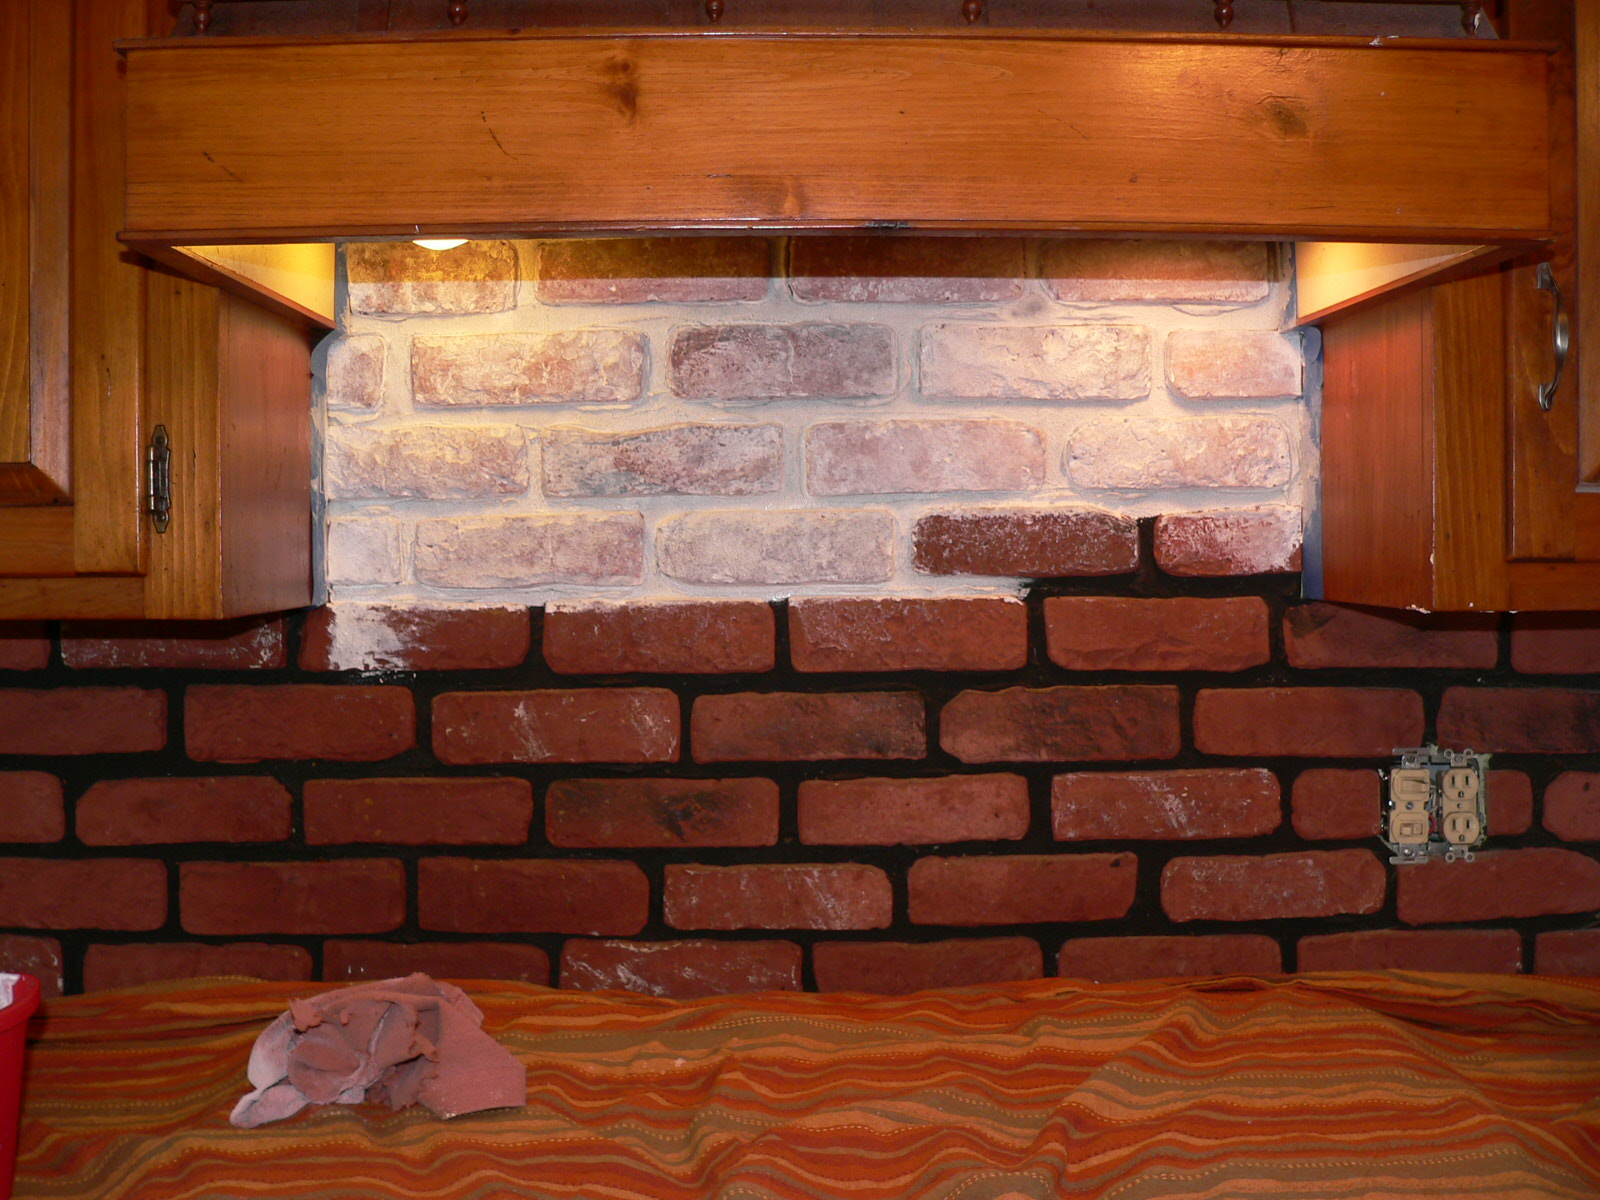 how to install brick veneer backsplash apps directories